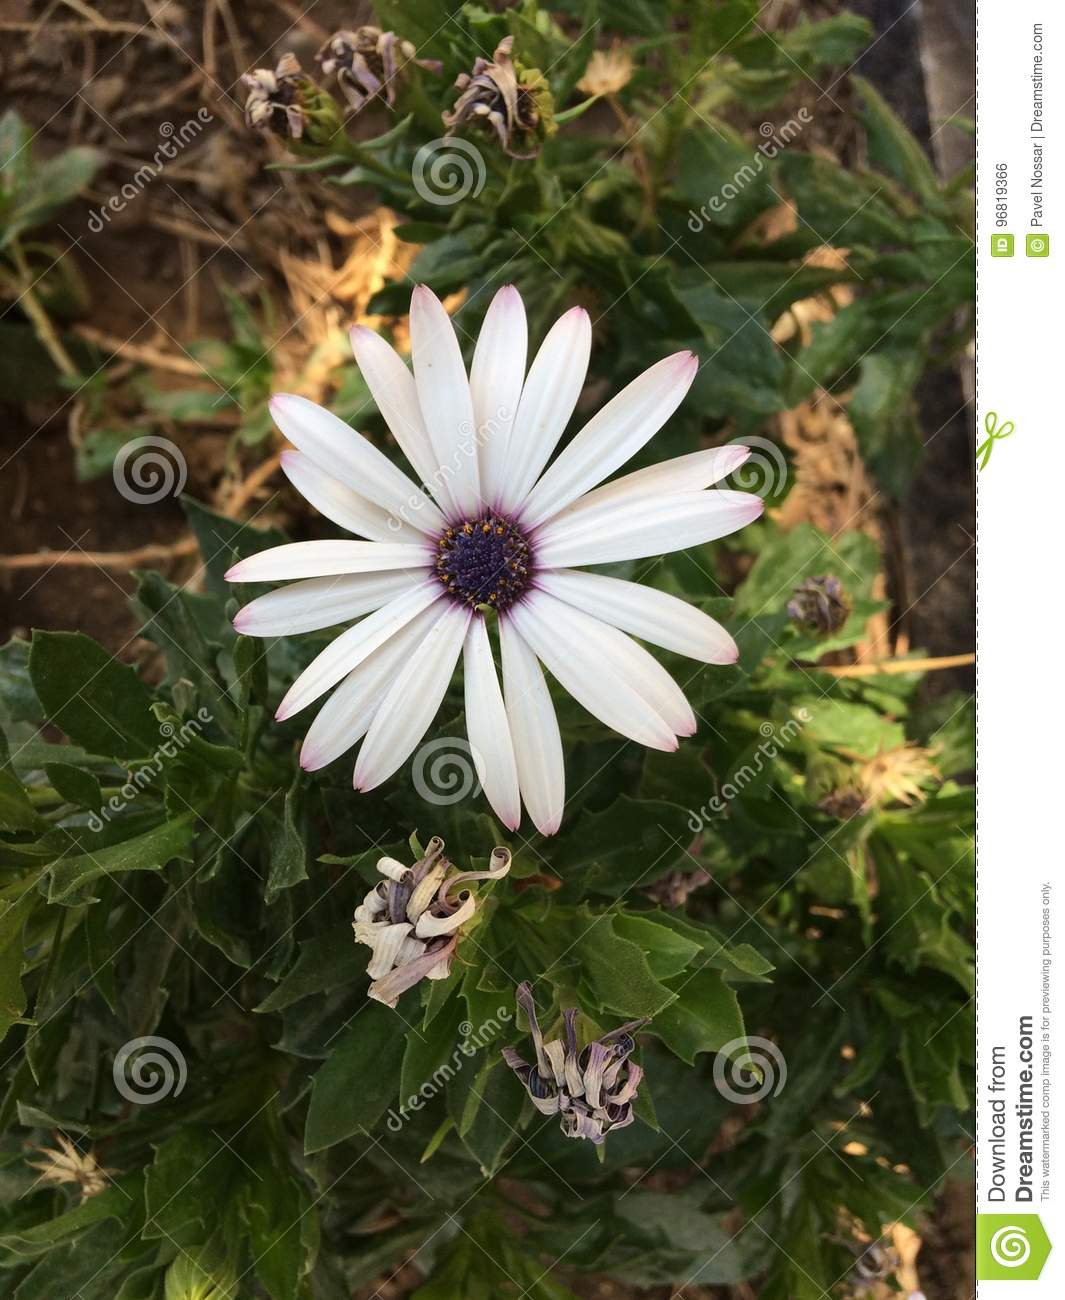 White Flower With Purple Center Stock Photo Image Of Flora Border